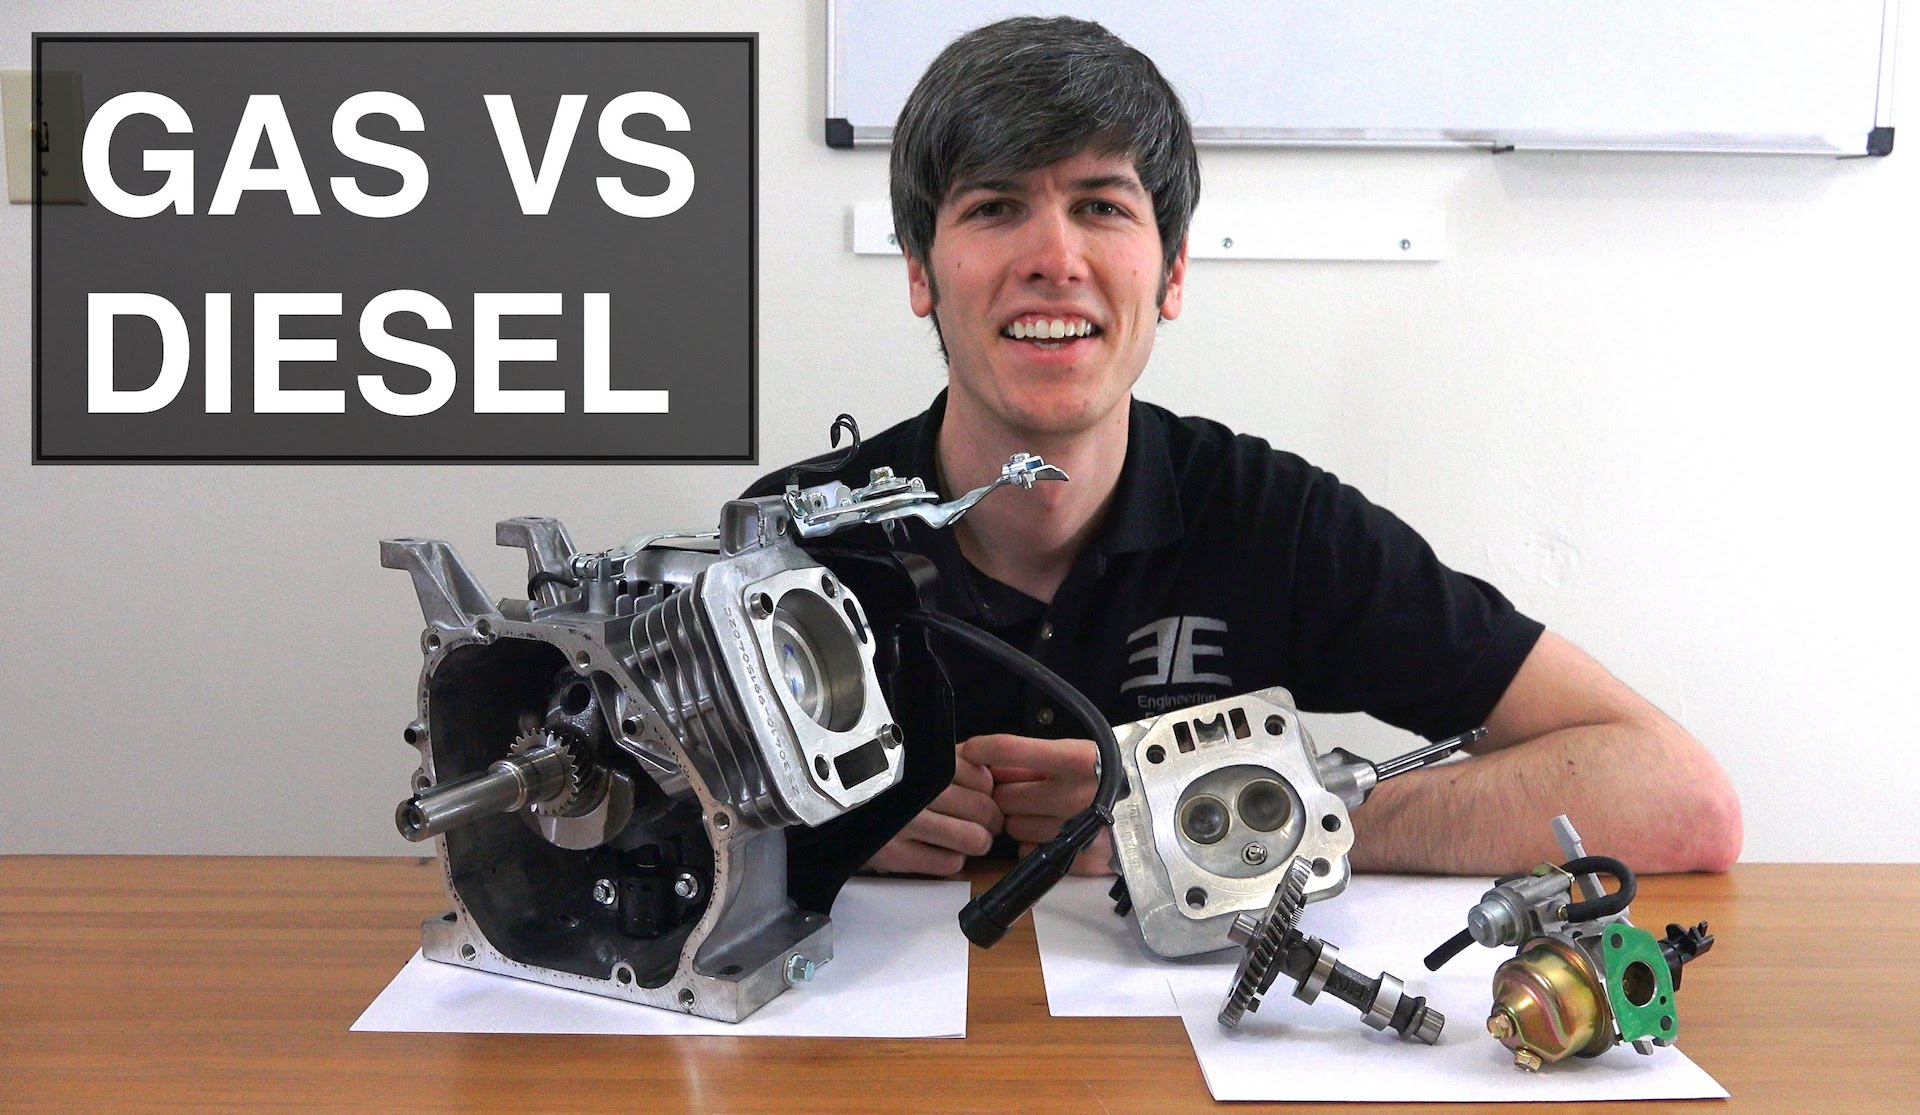 Diesel and gas, it's time to learn the difference